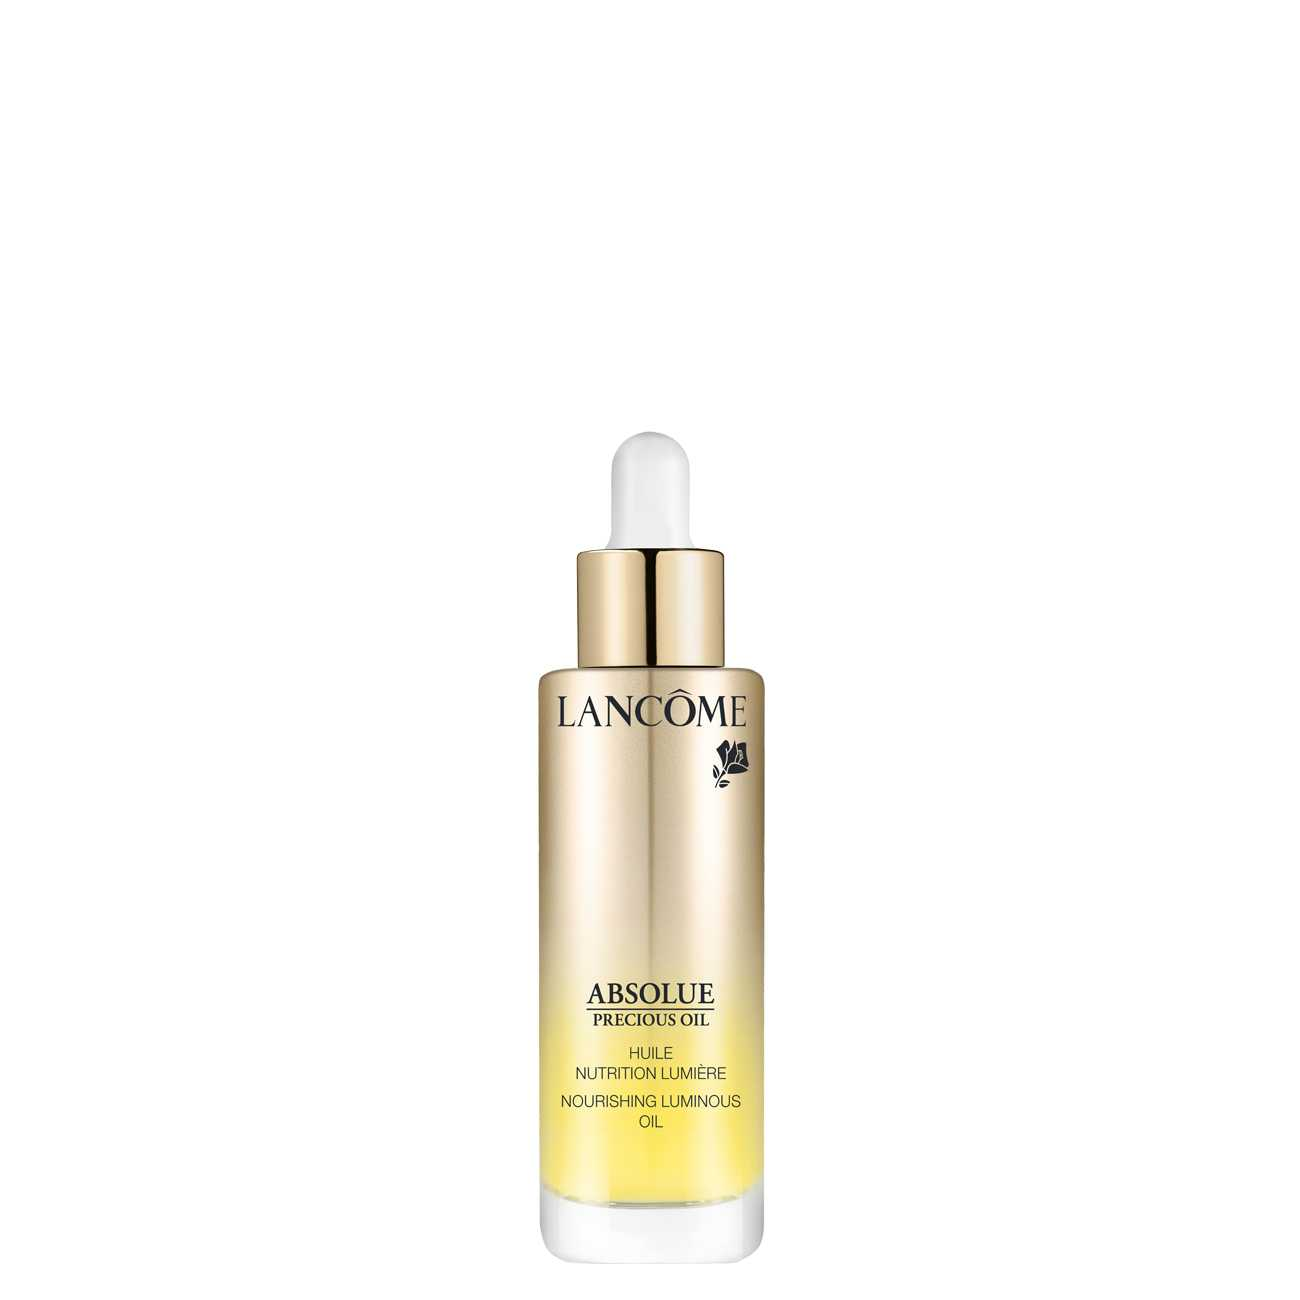 ABSOLUE PRECIOUS CELLS OIL 30 ML